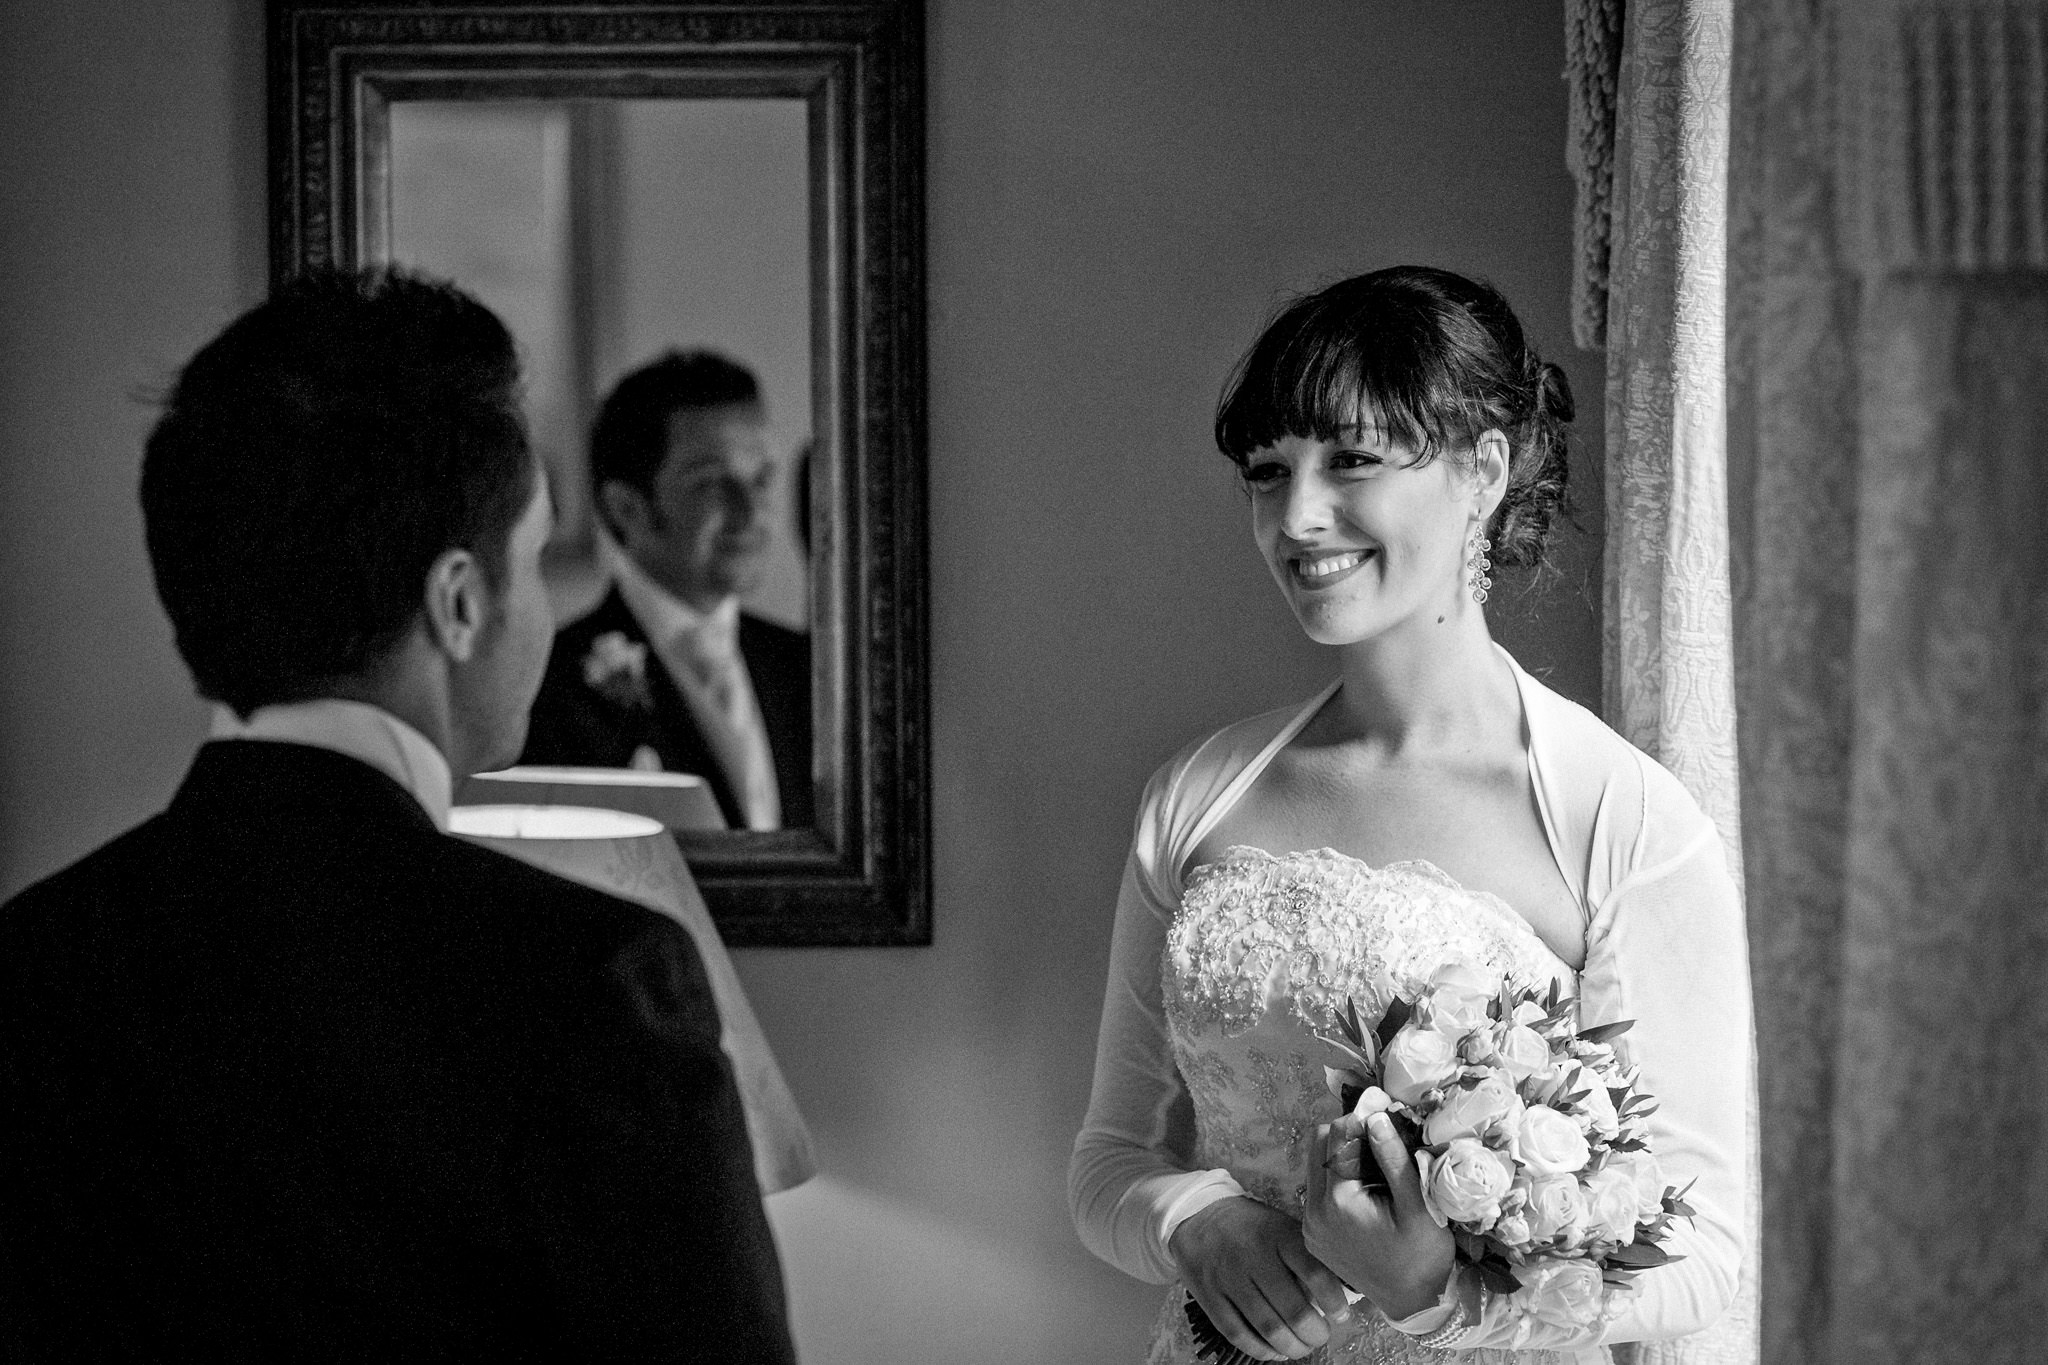 Sussex Wedding Videographer couple in the room looking at each other